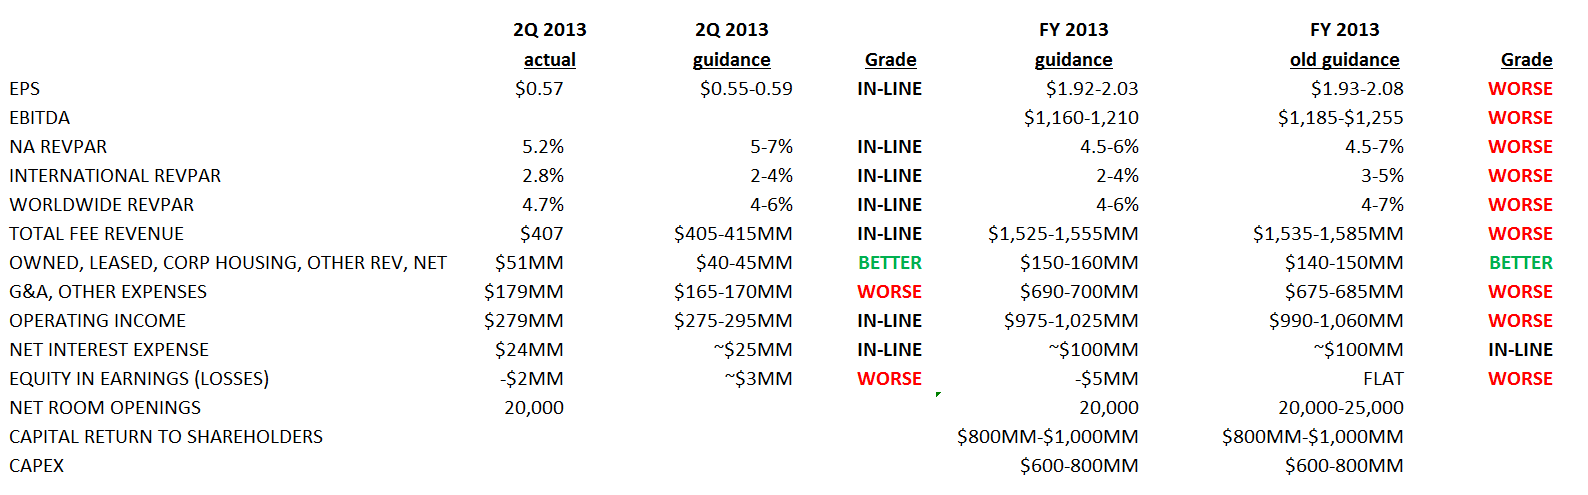 MAR 2Q 2013 REPORT CARD - MAR123